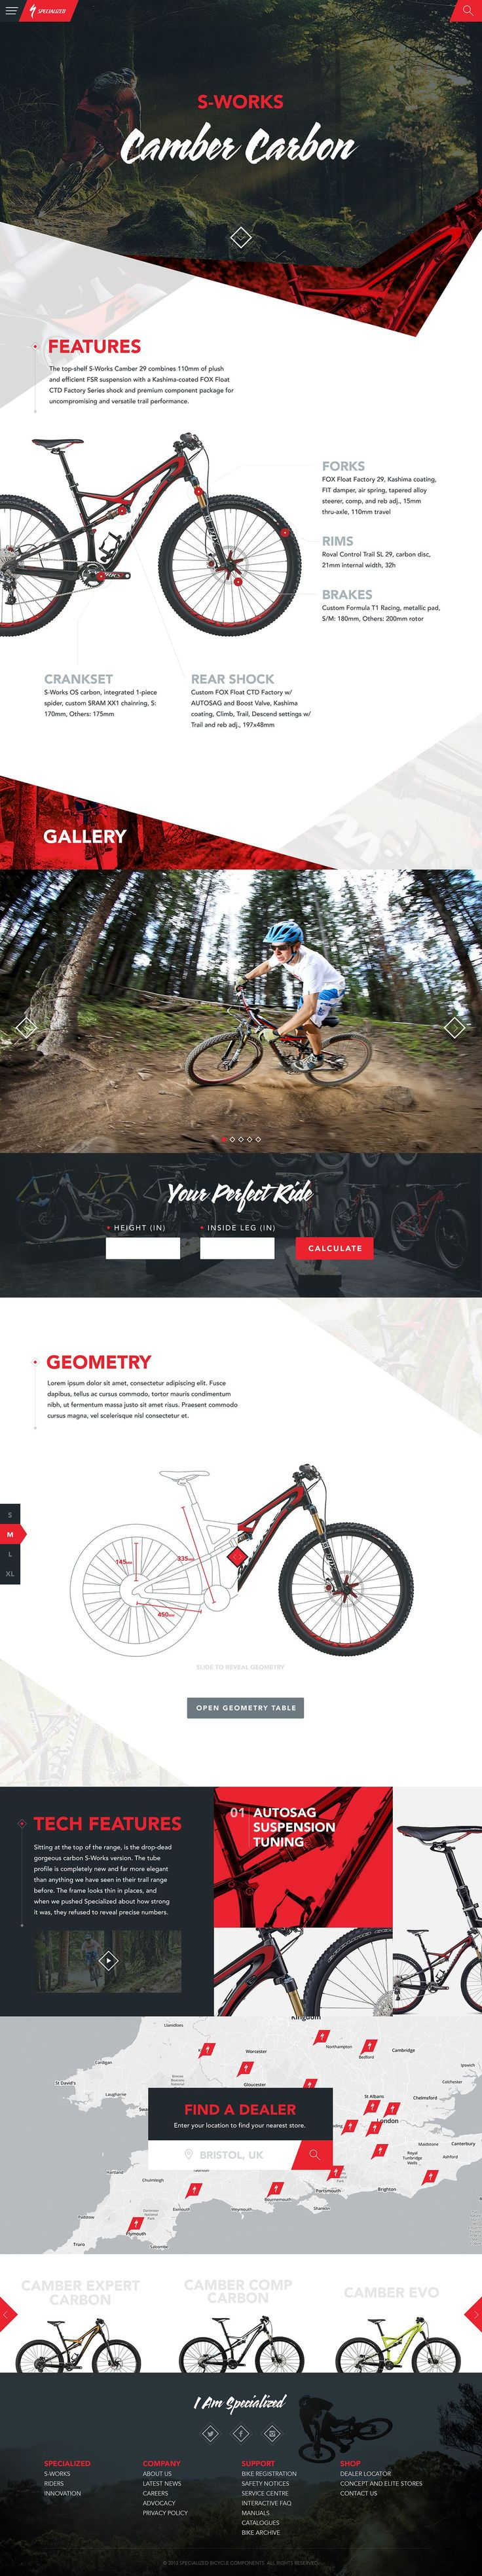 Green Chameleon -- outdoors, bike, clean, products